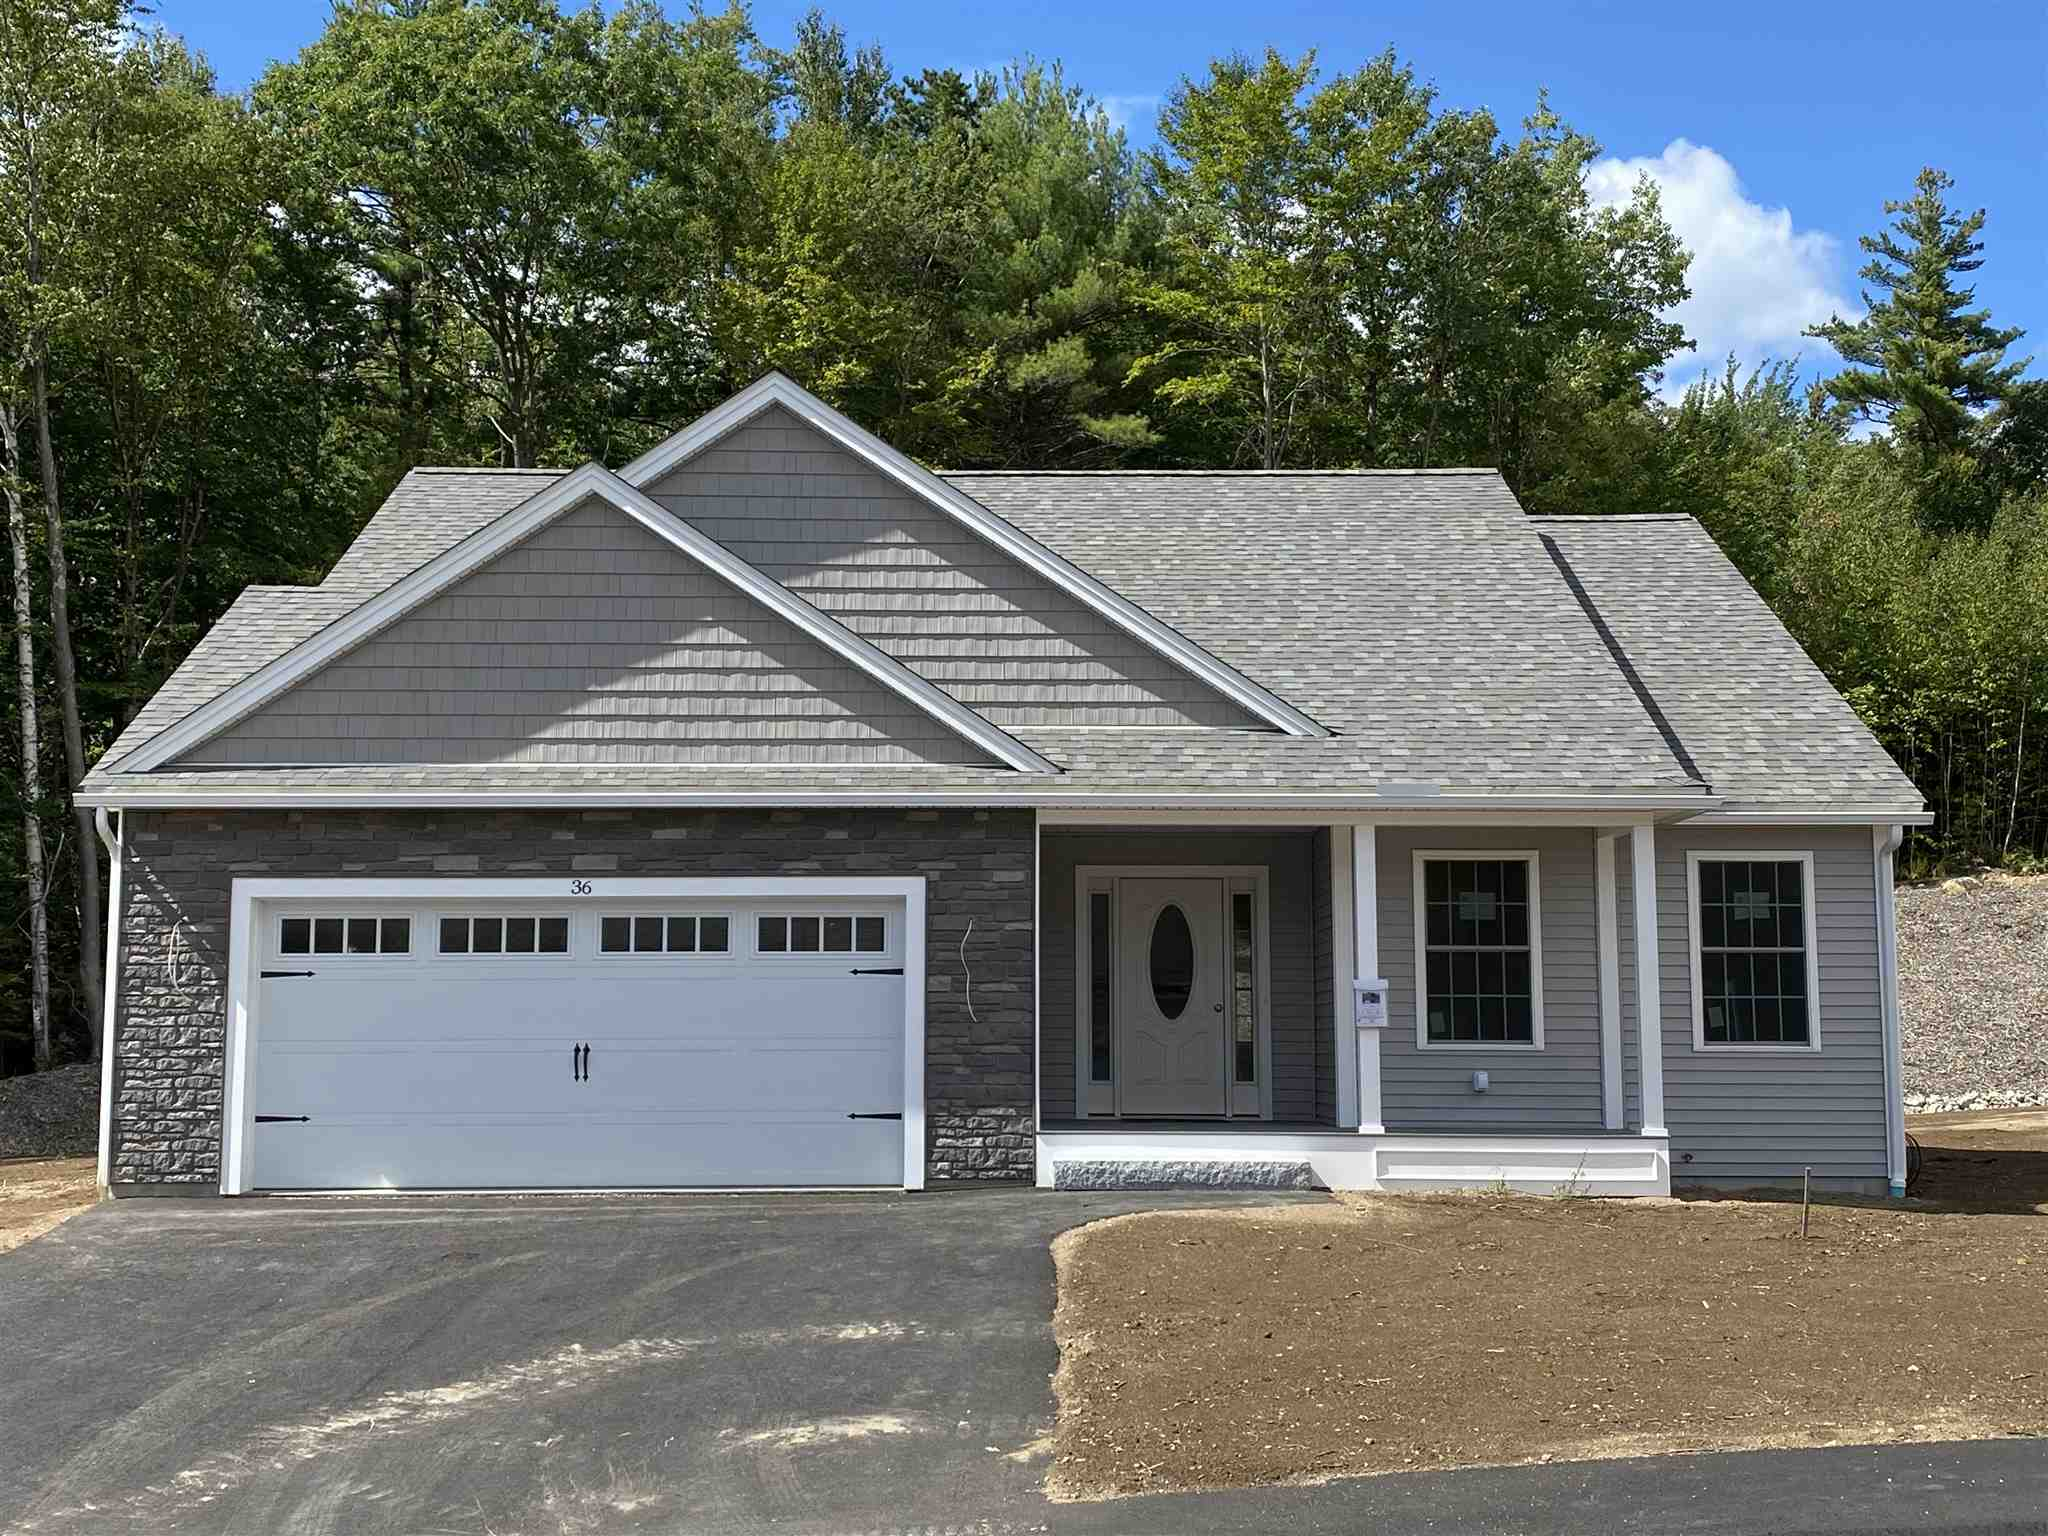 Photo of 36 Pineview Drive Candia NH 03034